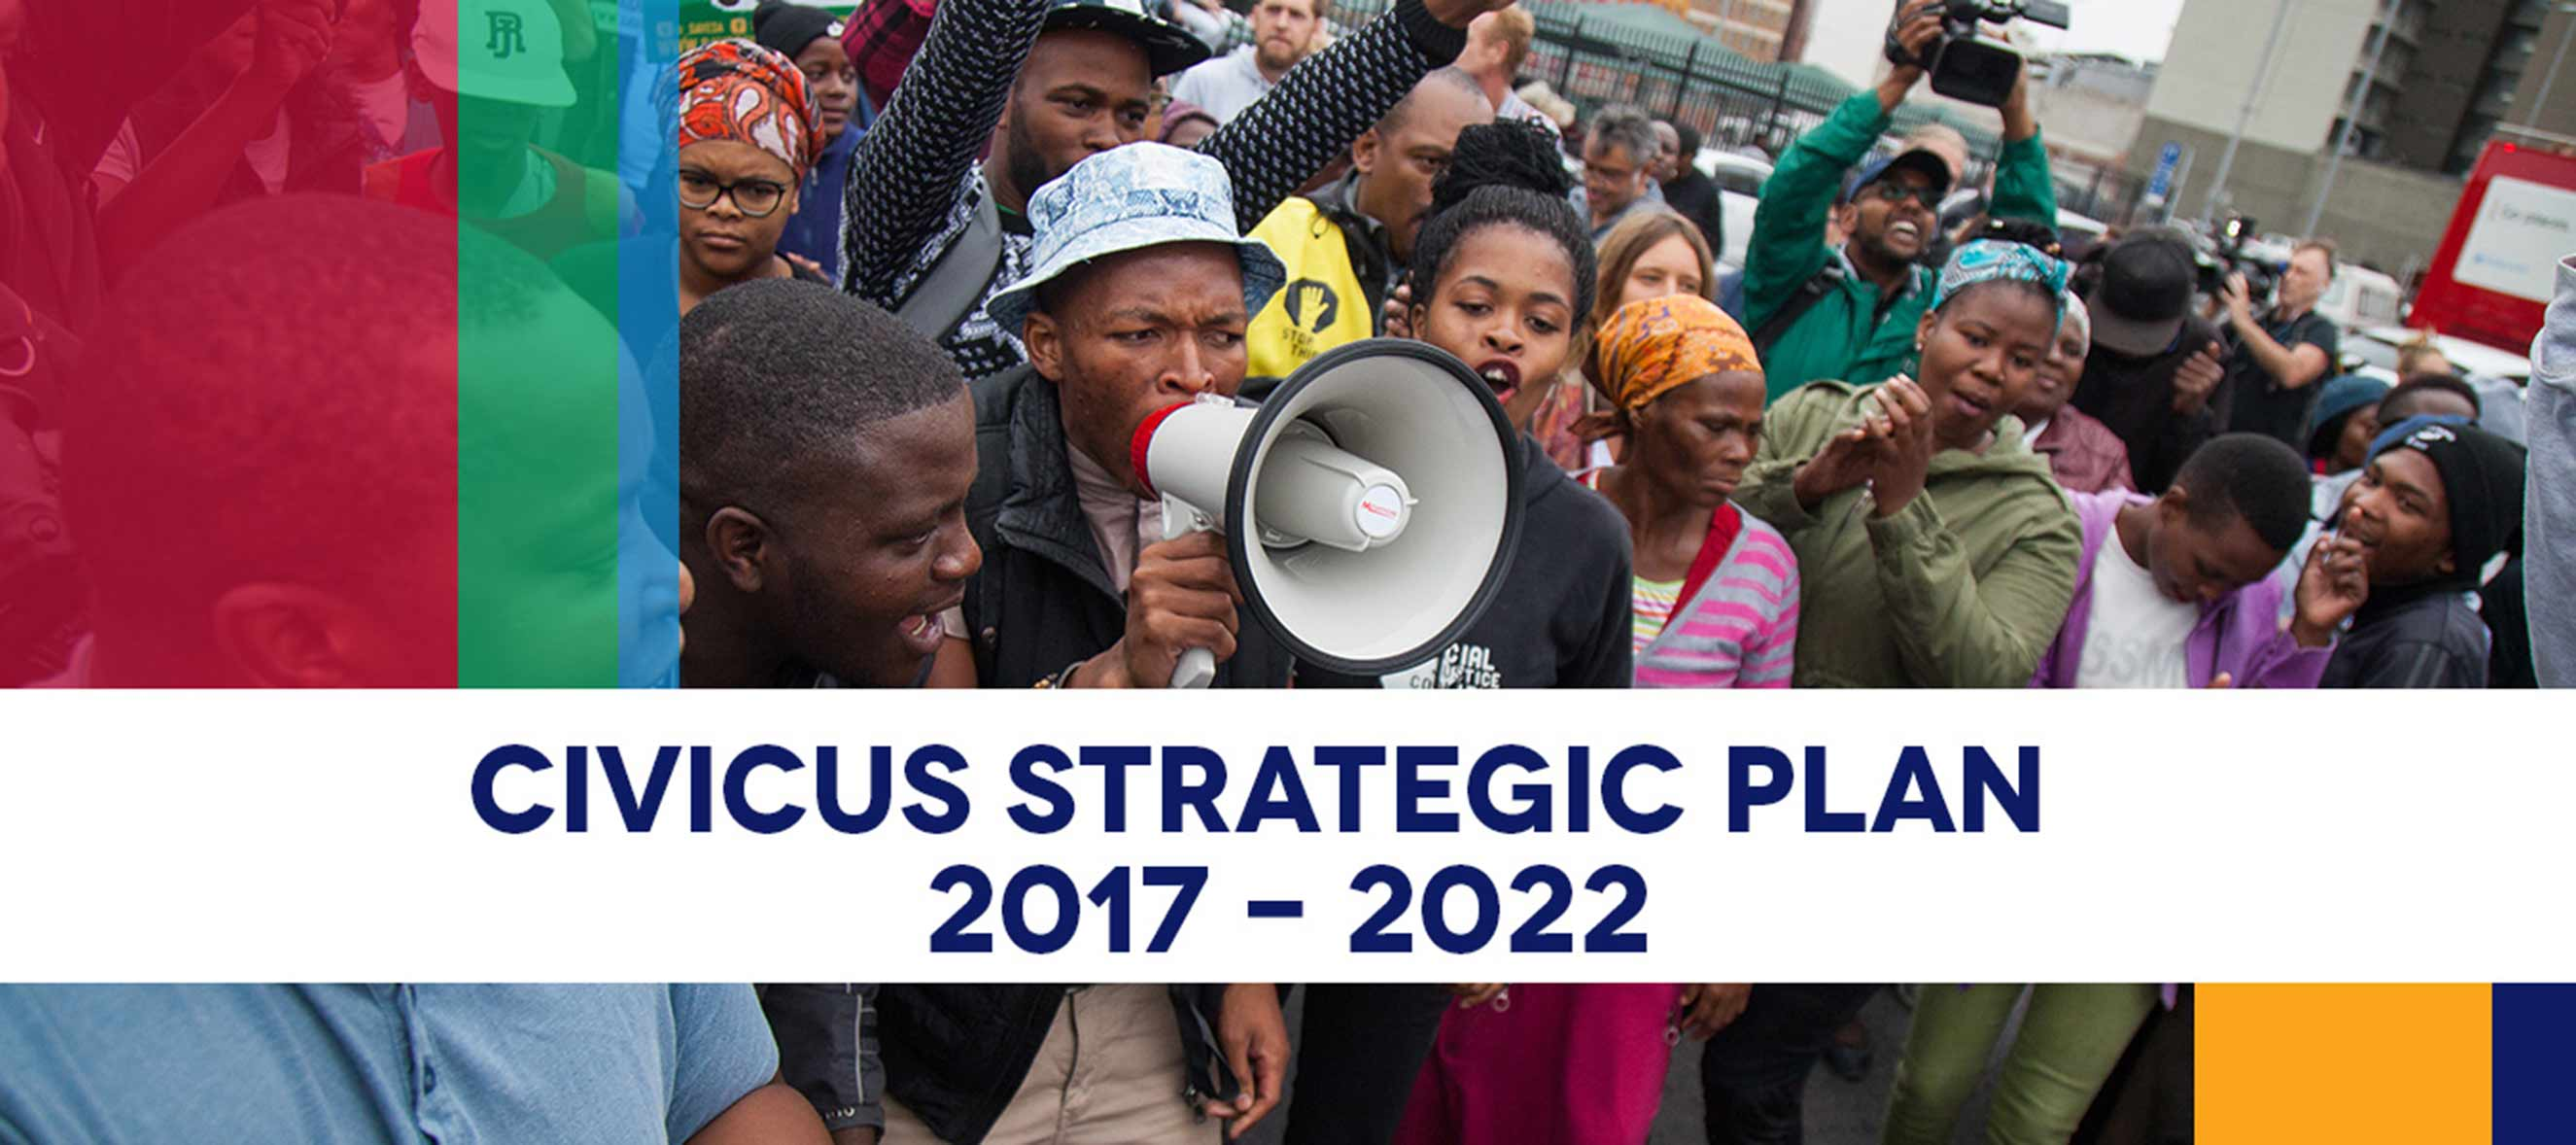 CIVICUS Strategic Plan 2017 - 2022